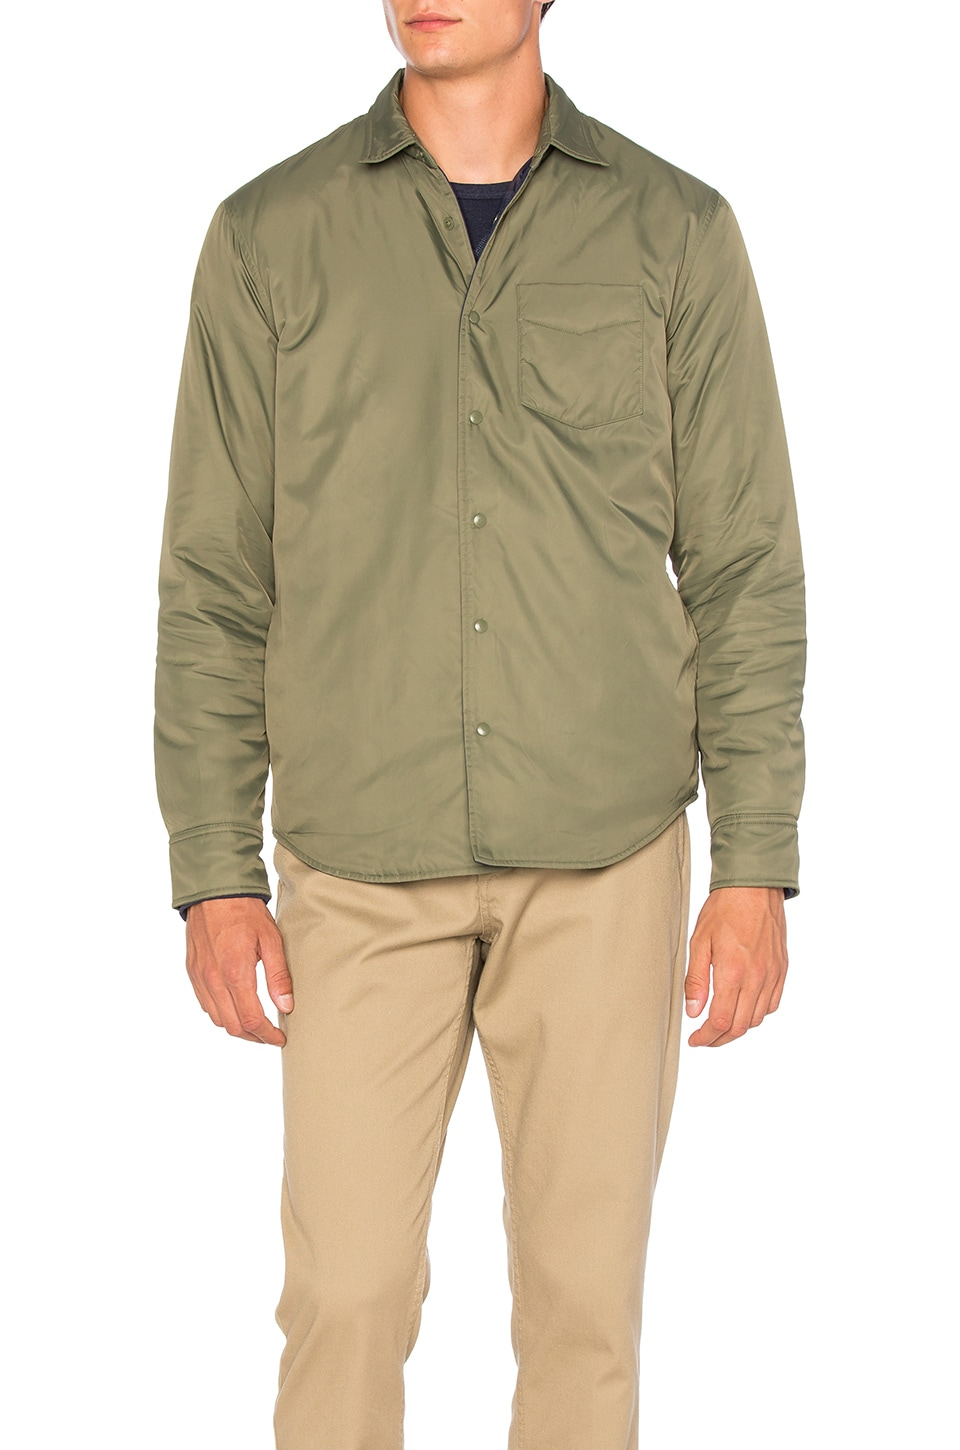 Evolution Reversible Jacket by OUTERKNOWN